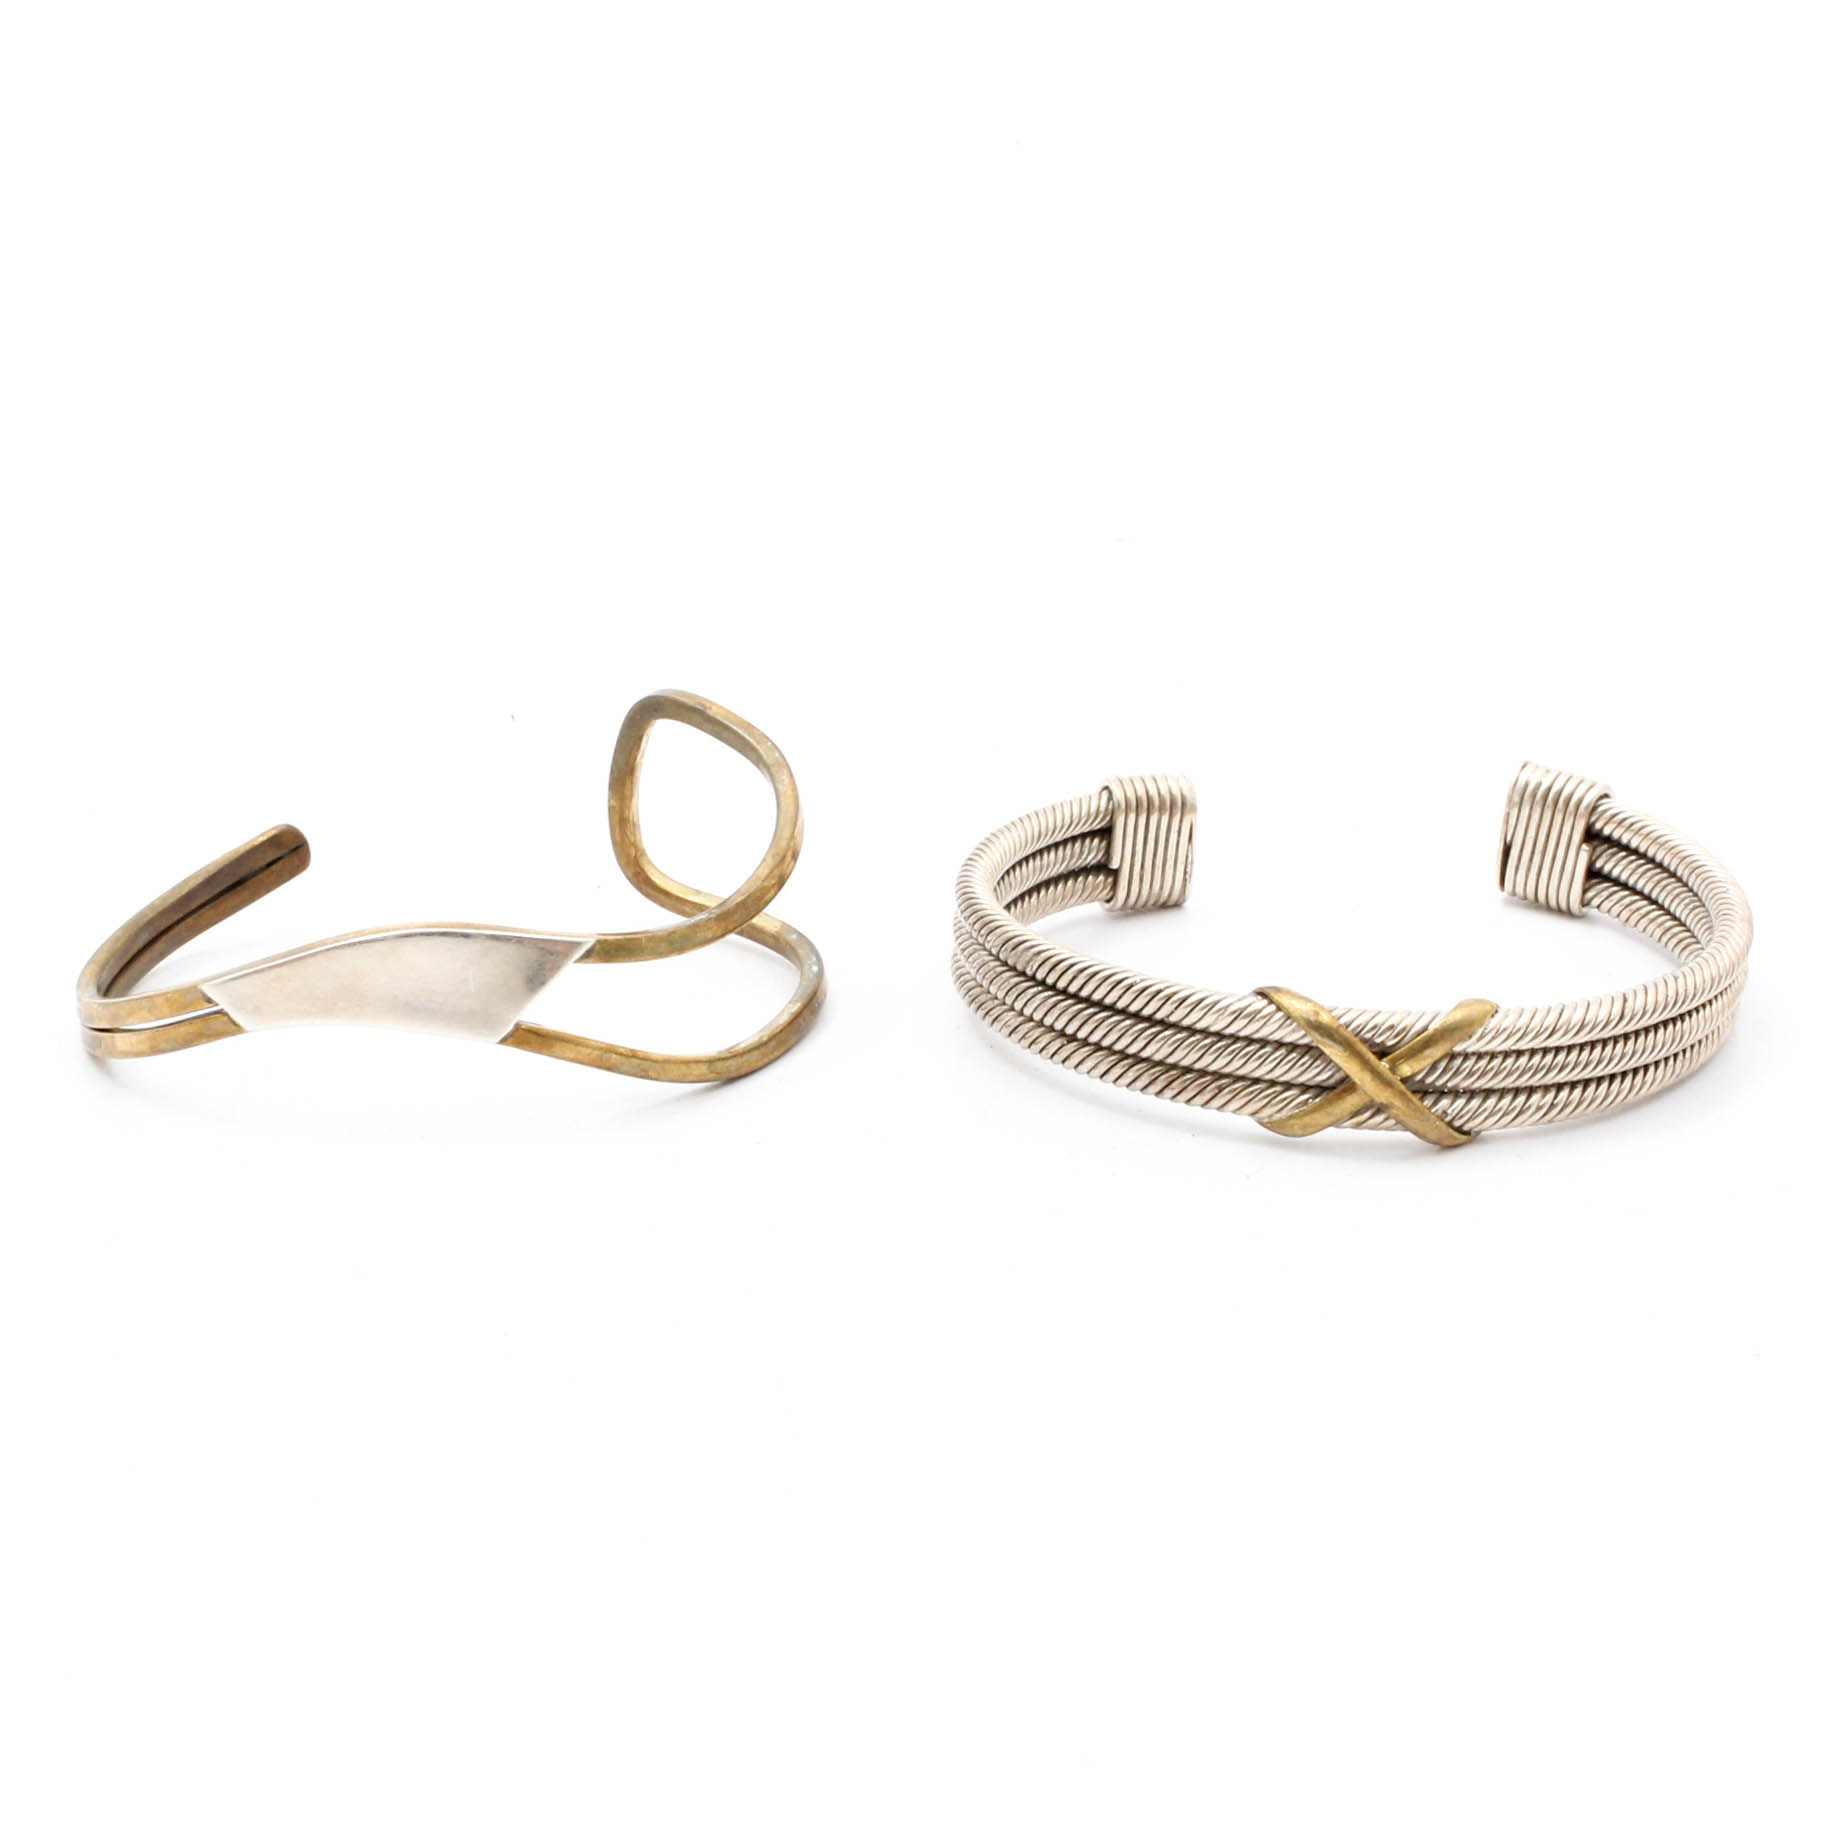 Sterling Silver and Brass Cuffs